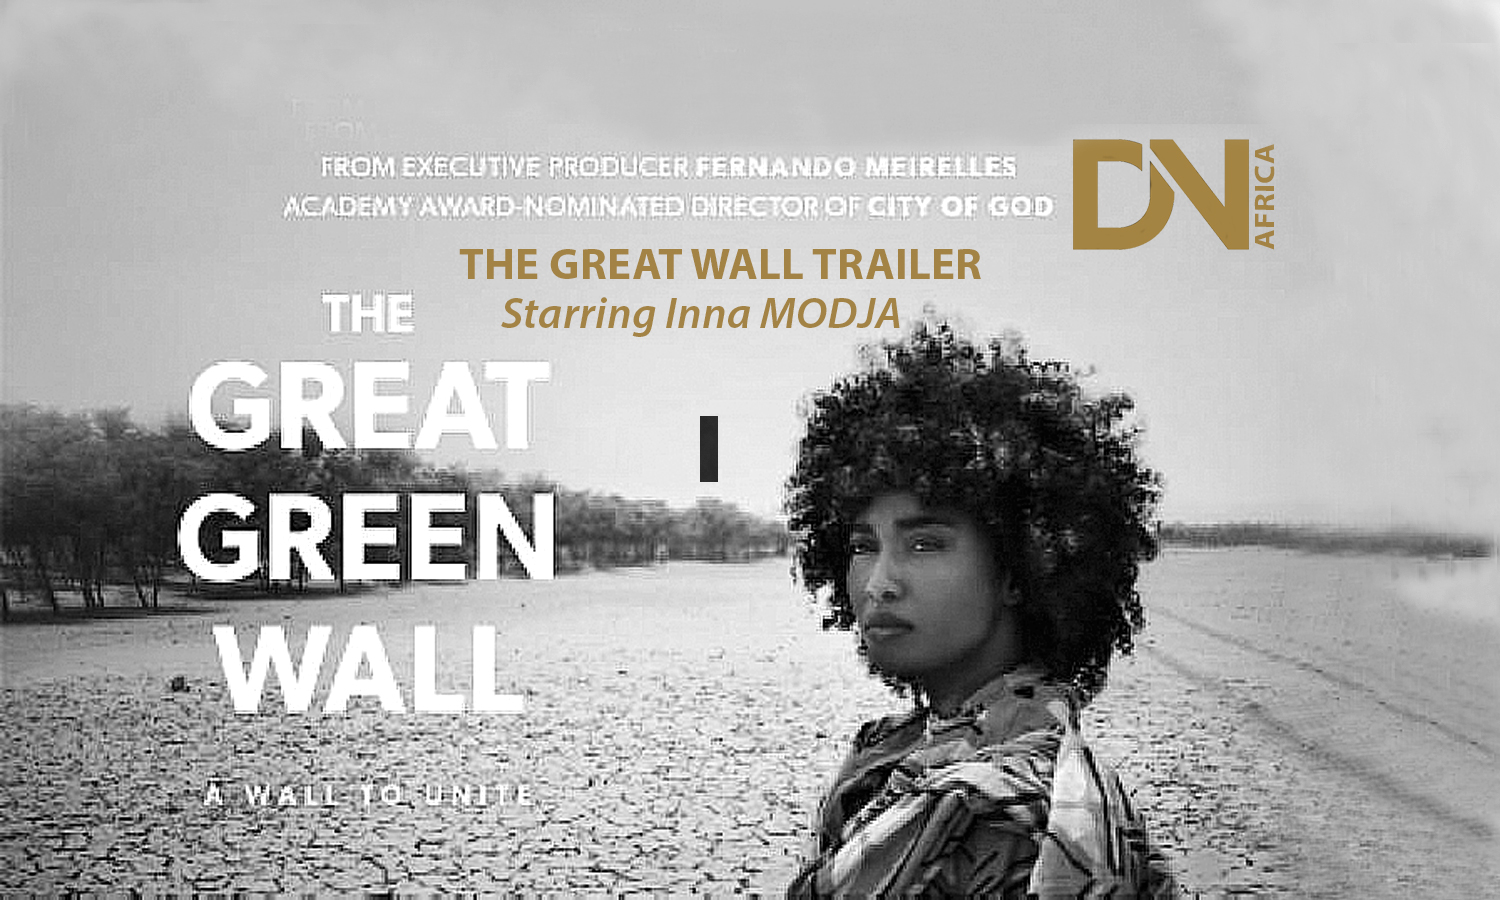 AFRICAN FASHION STYLE MAGAZINE - THE Great Wall TRAILER - Fight Against Climate Change from Senegal to Djibouti - Starring by Inna Modja _ executive-produced by Fernando Meirelles _ Photographer DAN NGU - Media Partner DN AFRICA - STUDIO 24 NIGERIA - STUDIO 24 INTERNATIONAL - Ifeanyi Christopher Oputa MD AND CEO OF COLVI LIMITED AND STUDIO 24 - CHEVEUX CHERIE and CHEVEUX CHERIE STUDIO BY MARIEME DUBOZ- Fashion Editor Nahomie NOOR COULIBALY